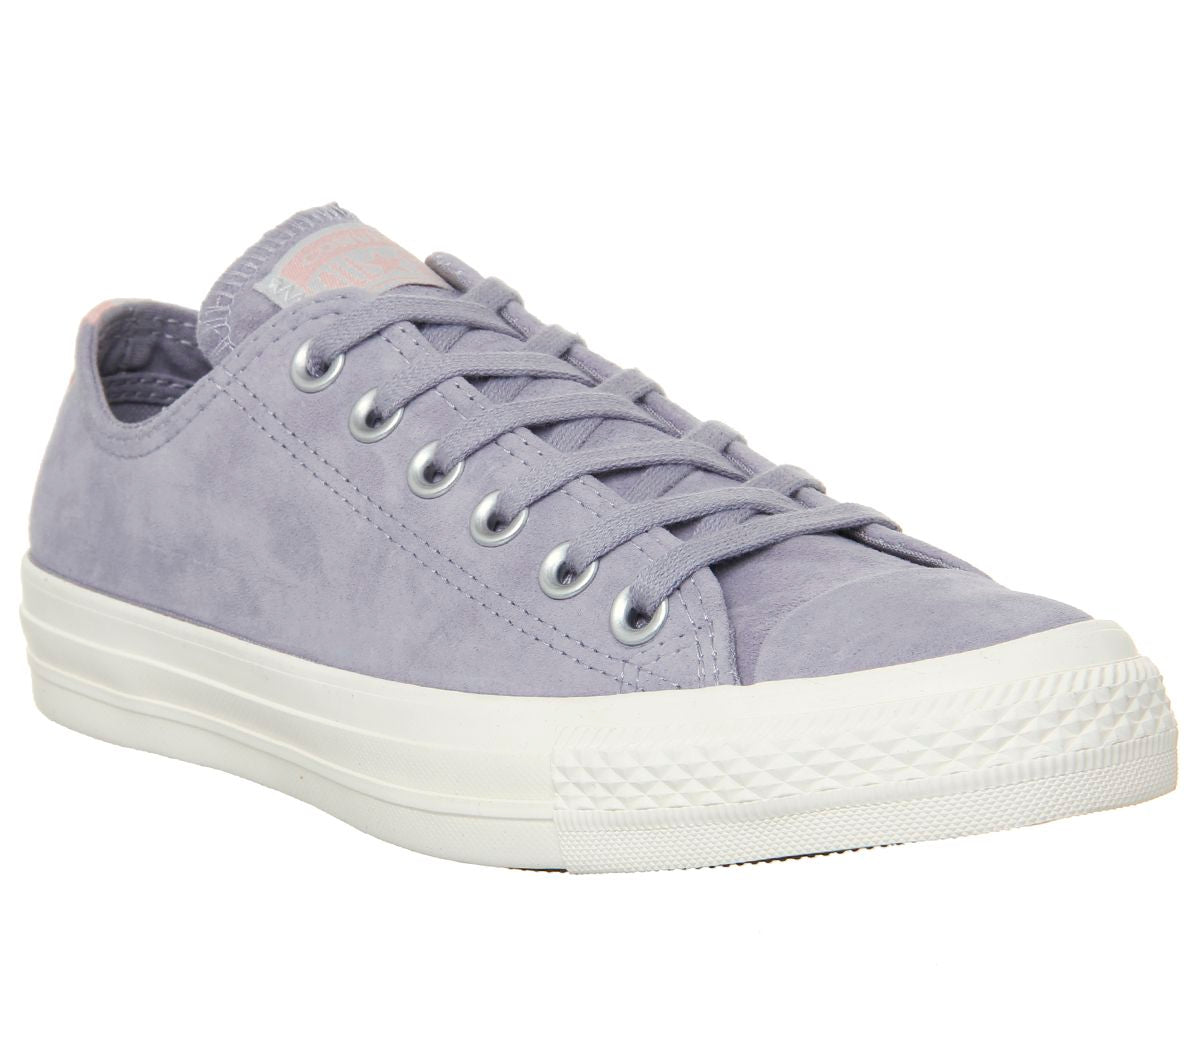 Converse All Star Low Leather Trainers Provence Purple Egret Heel Stripe